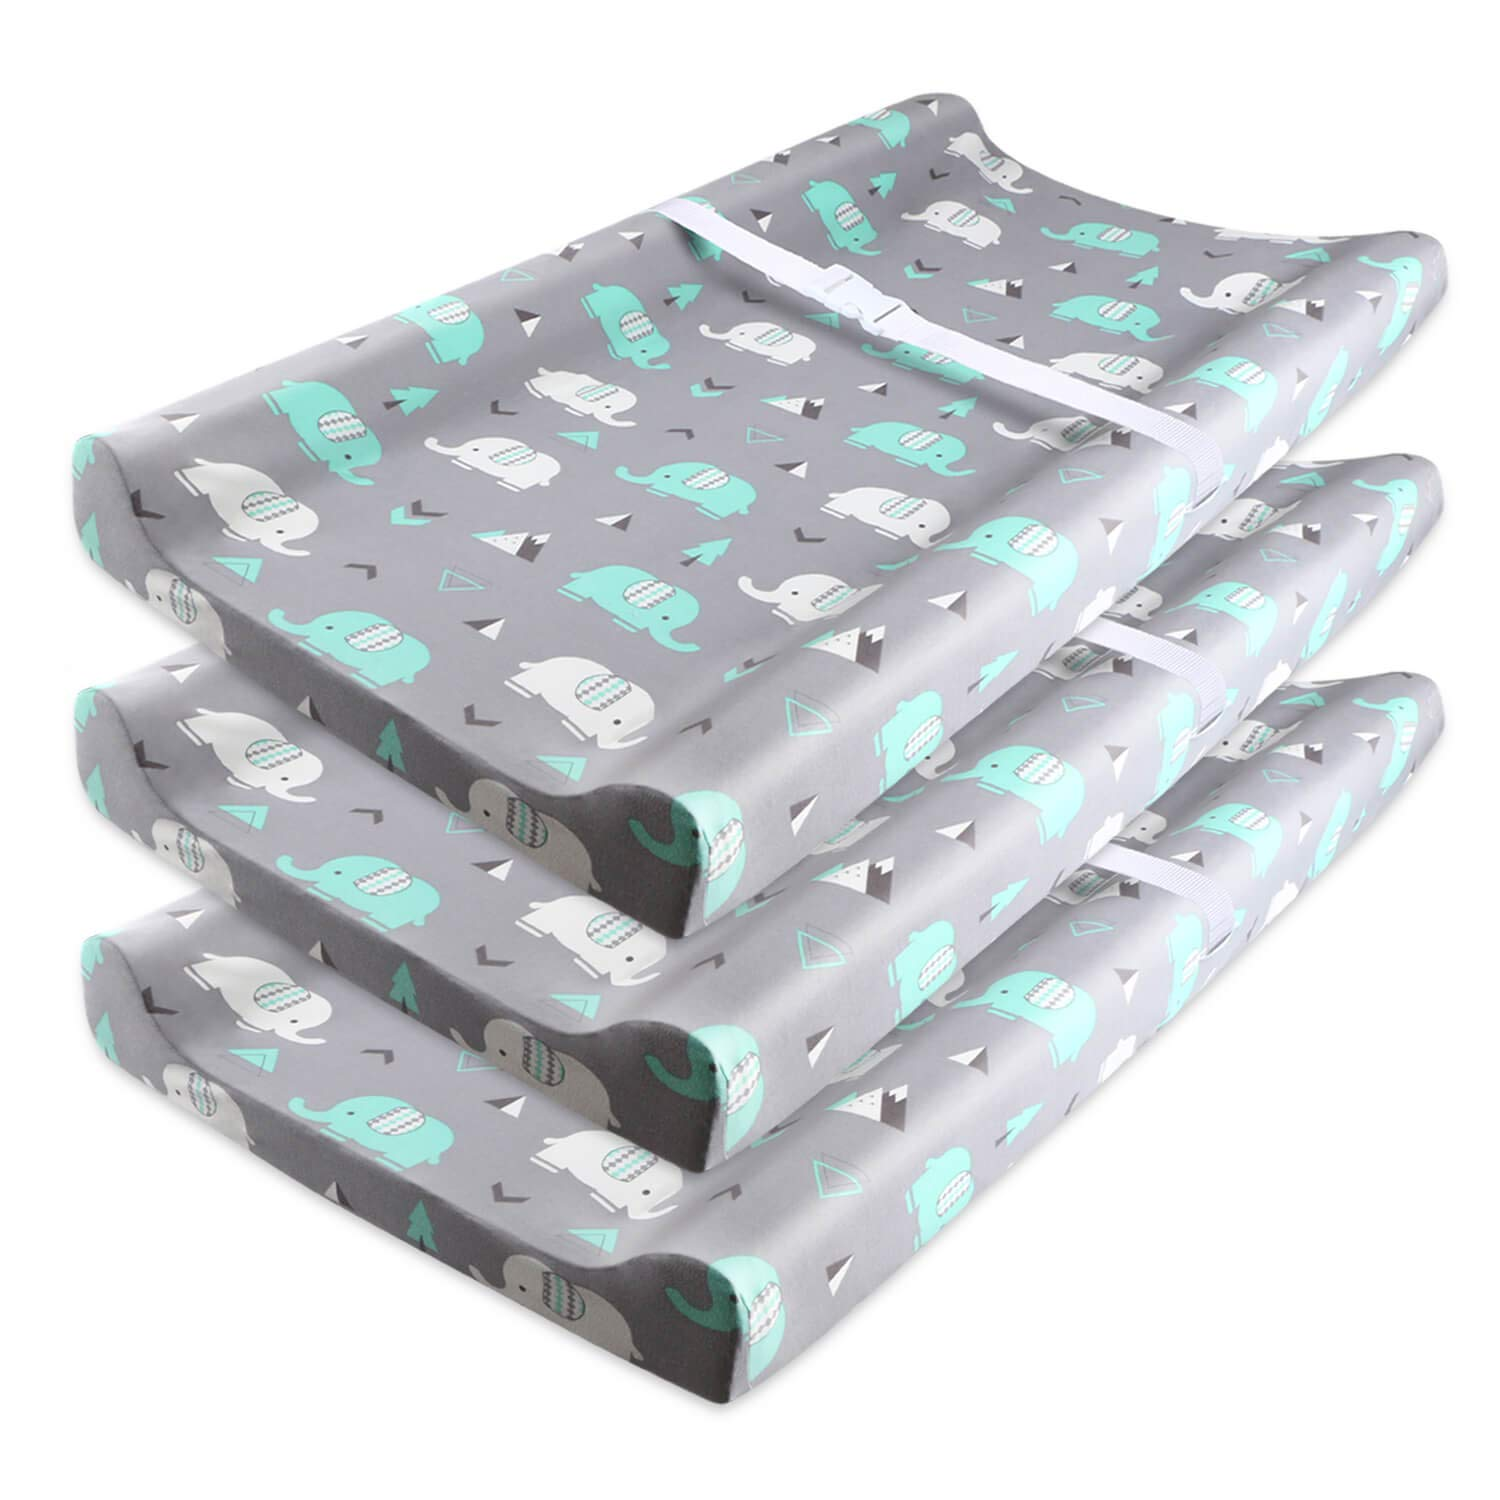 Stretch Fitted Changing Pad Cover, Breathable Semi-Waterproof Diaper Change Pad Covers Set Elephant Super Soft Baby Changing Table Pad Sheet with Strap Holes for Infants Boys Girls 3 Pack